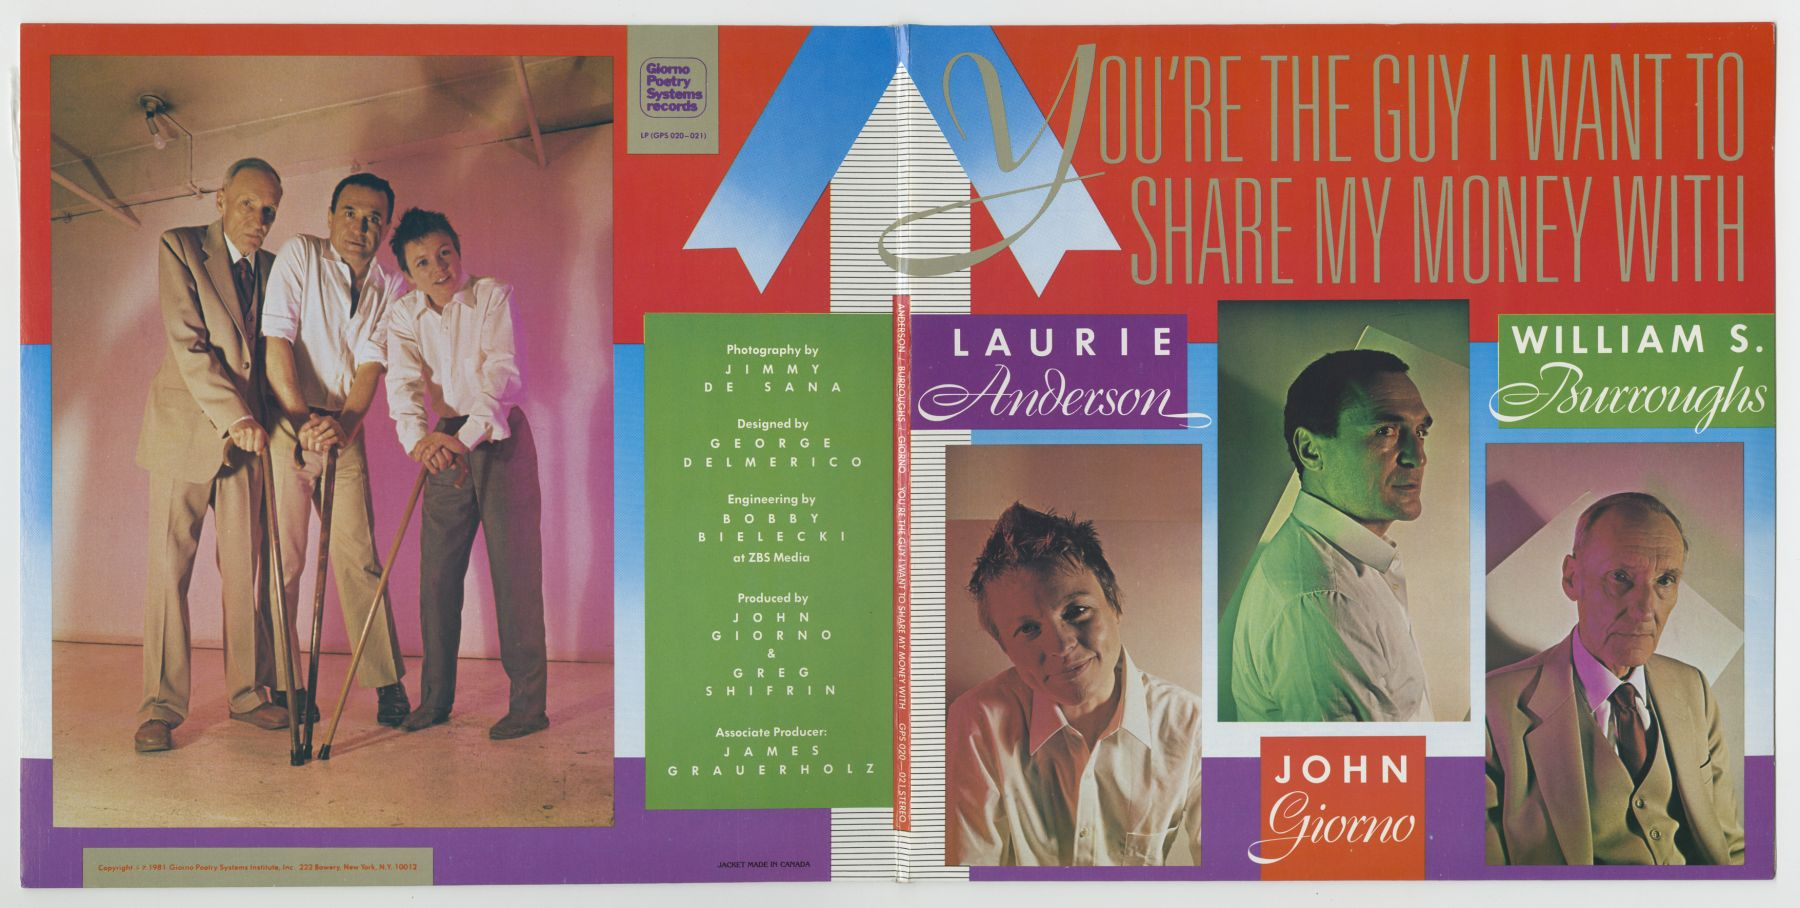 You're The Guy I Want To Share My Money With (1981), front and back covers